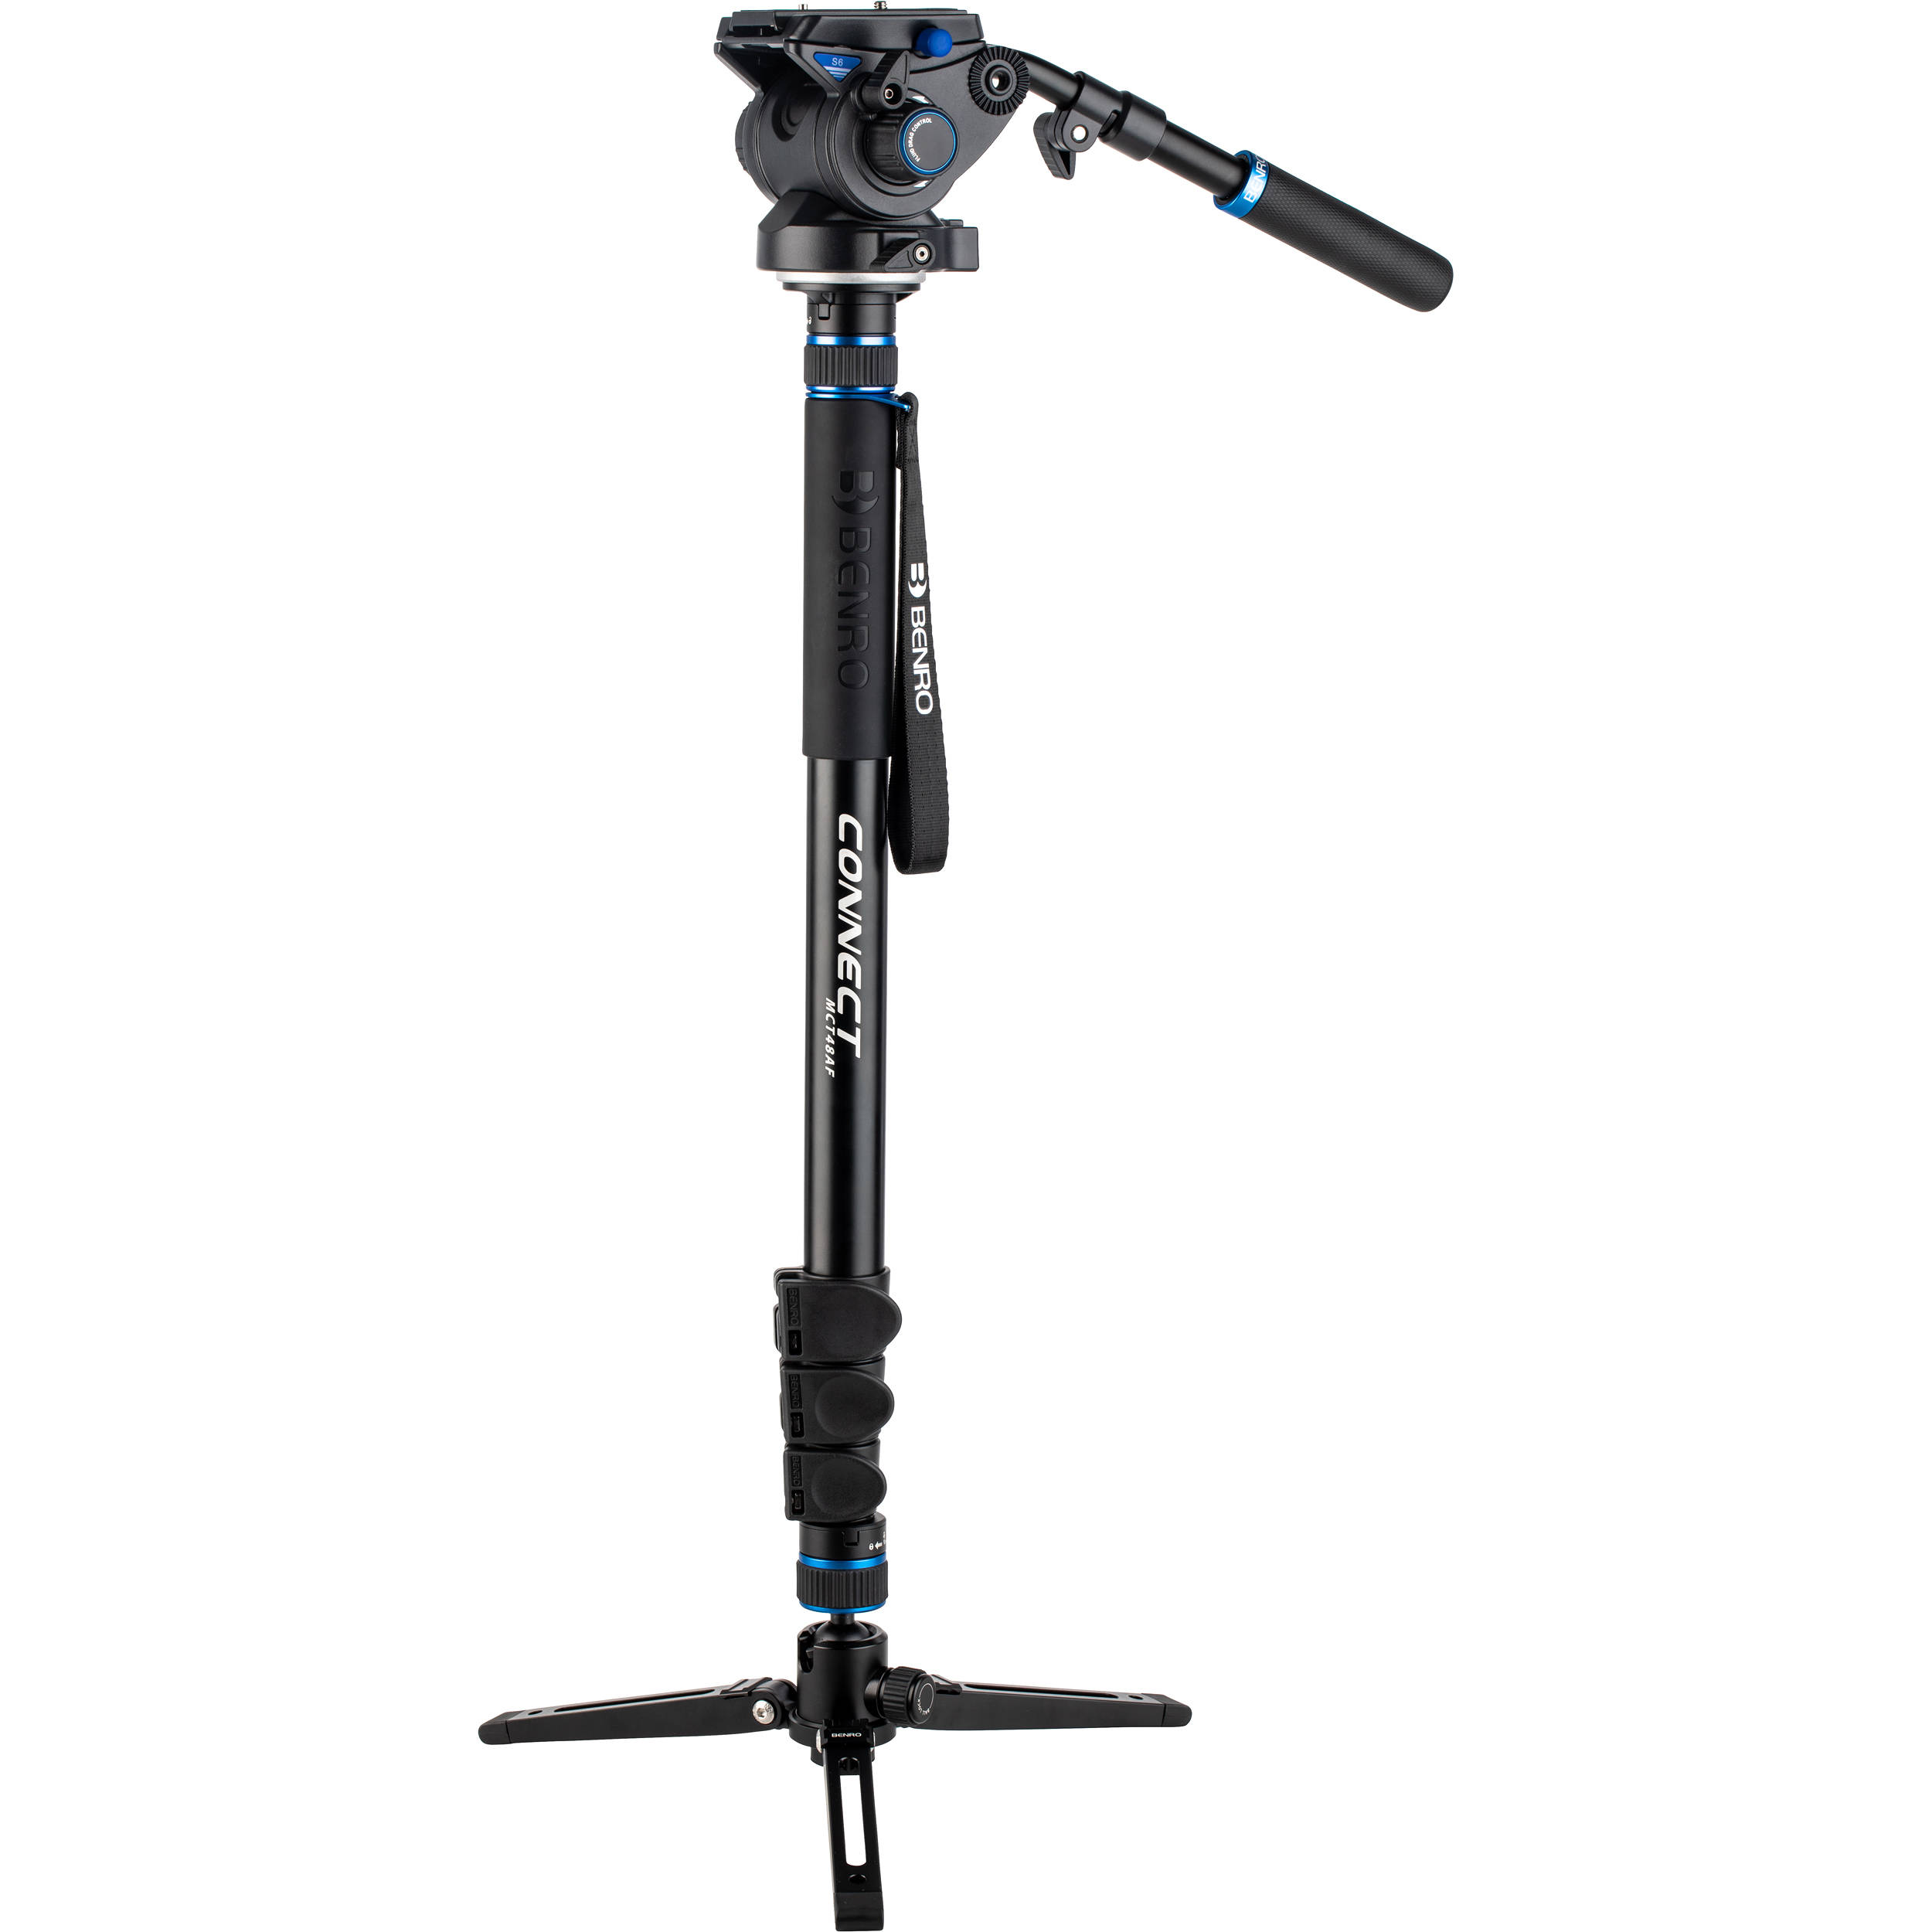 Benro Connect S6 Video Monopod Kit